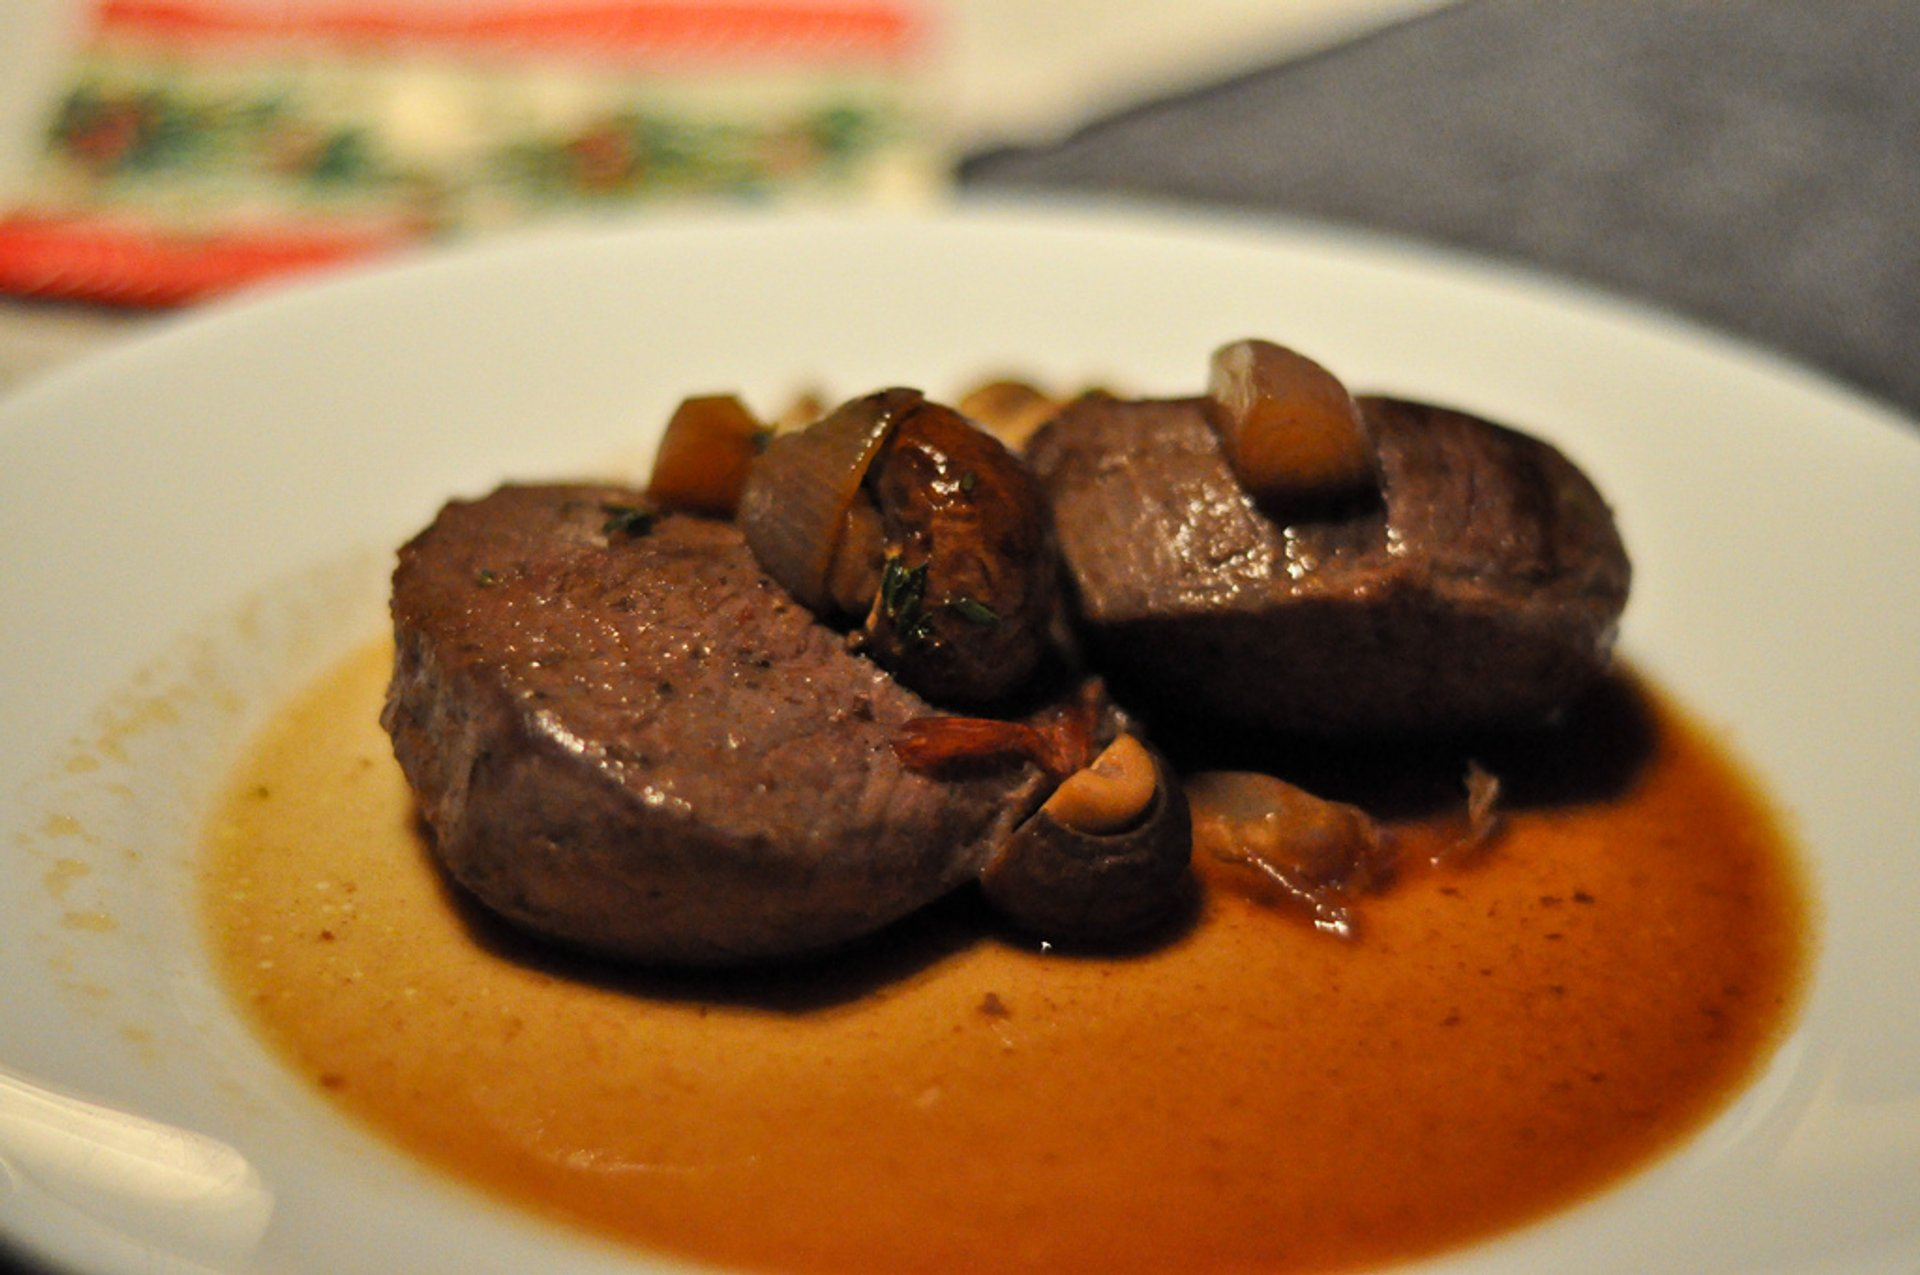 Venison in The Netherlands 2020 - Best Time